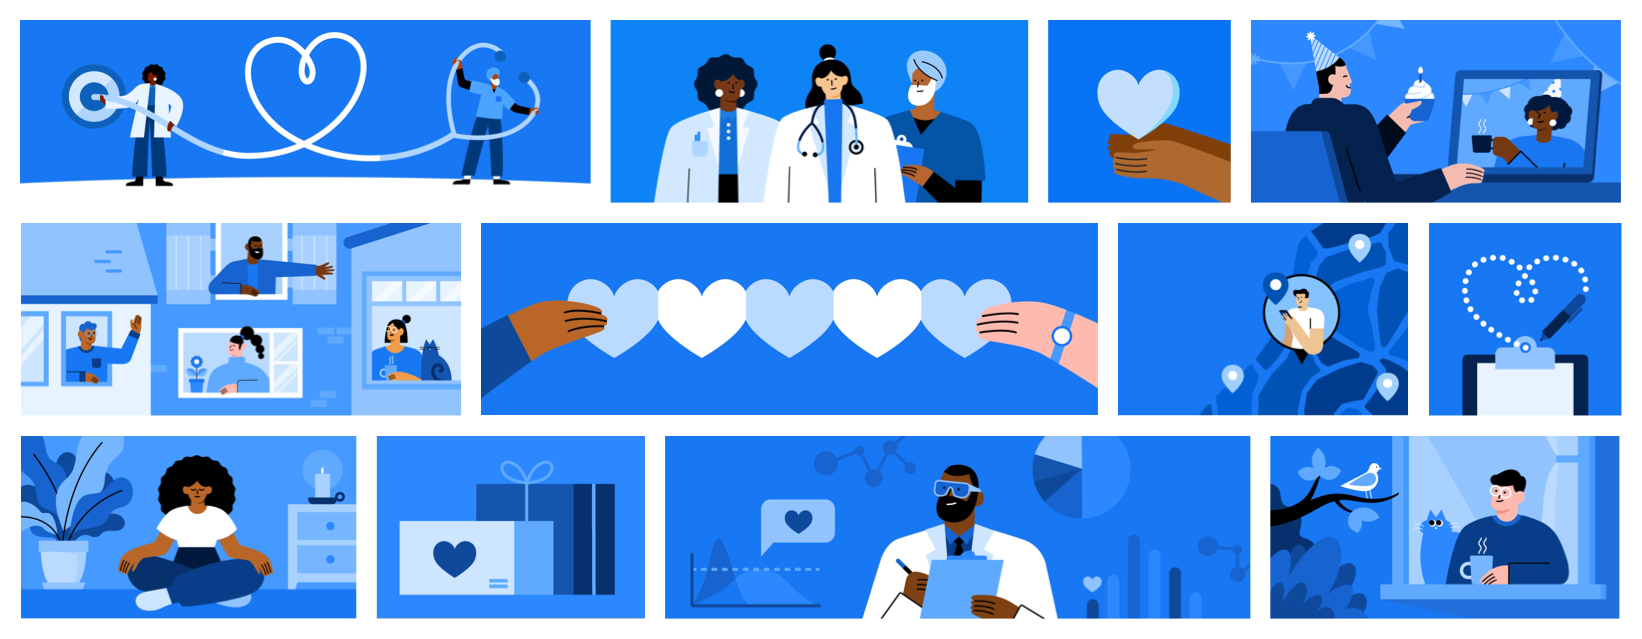 An illustration series related to the coronavirus shelter in place represents doctors, nurses and others of various abilities